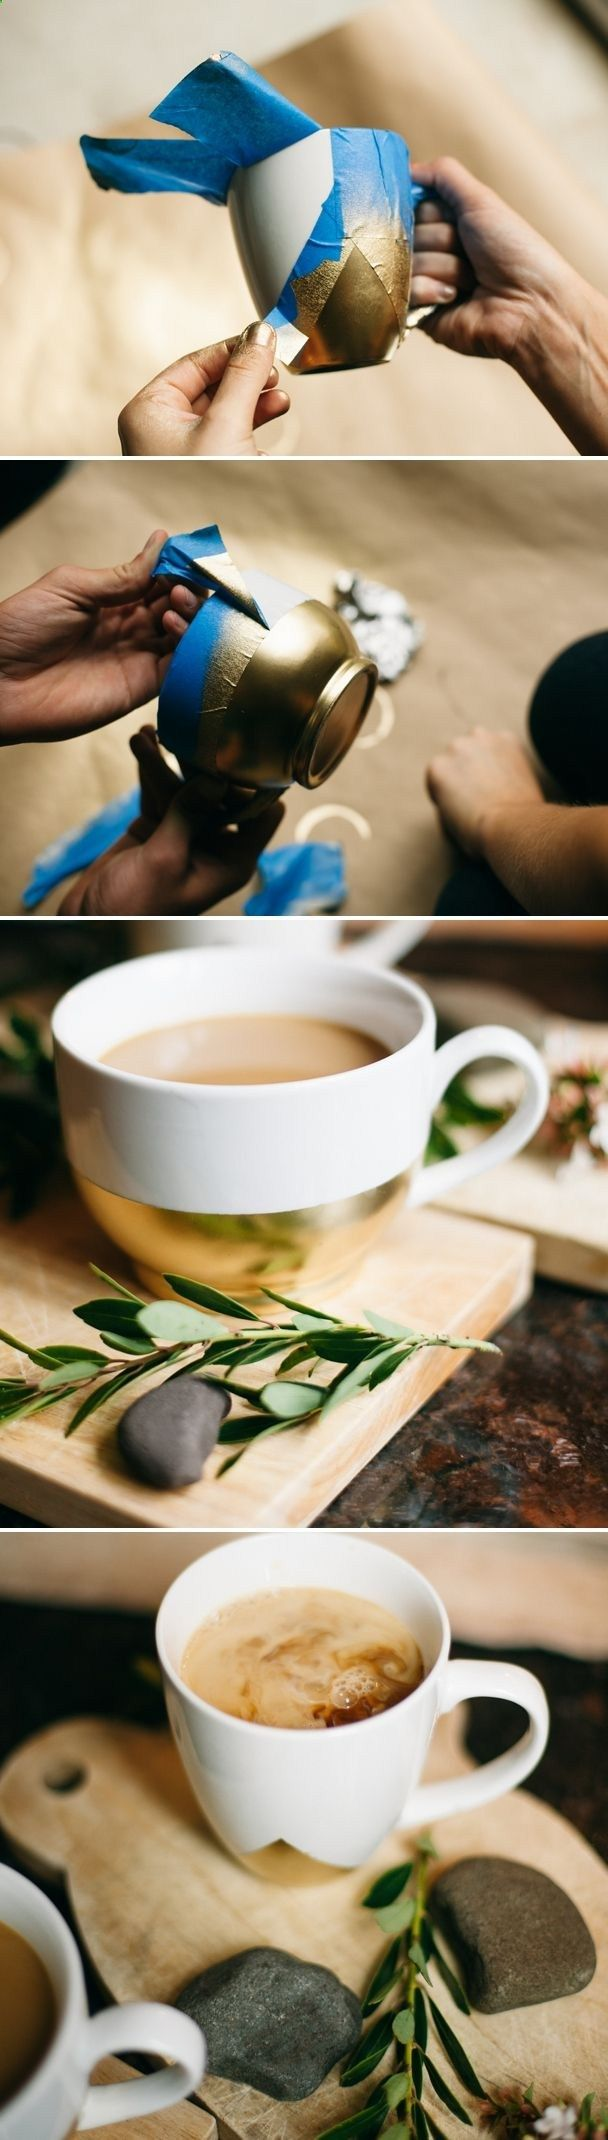 DIY painted mugs. Sometimes simple lines are the best.